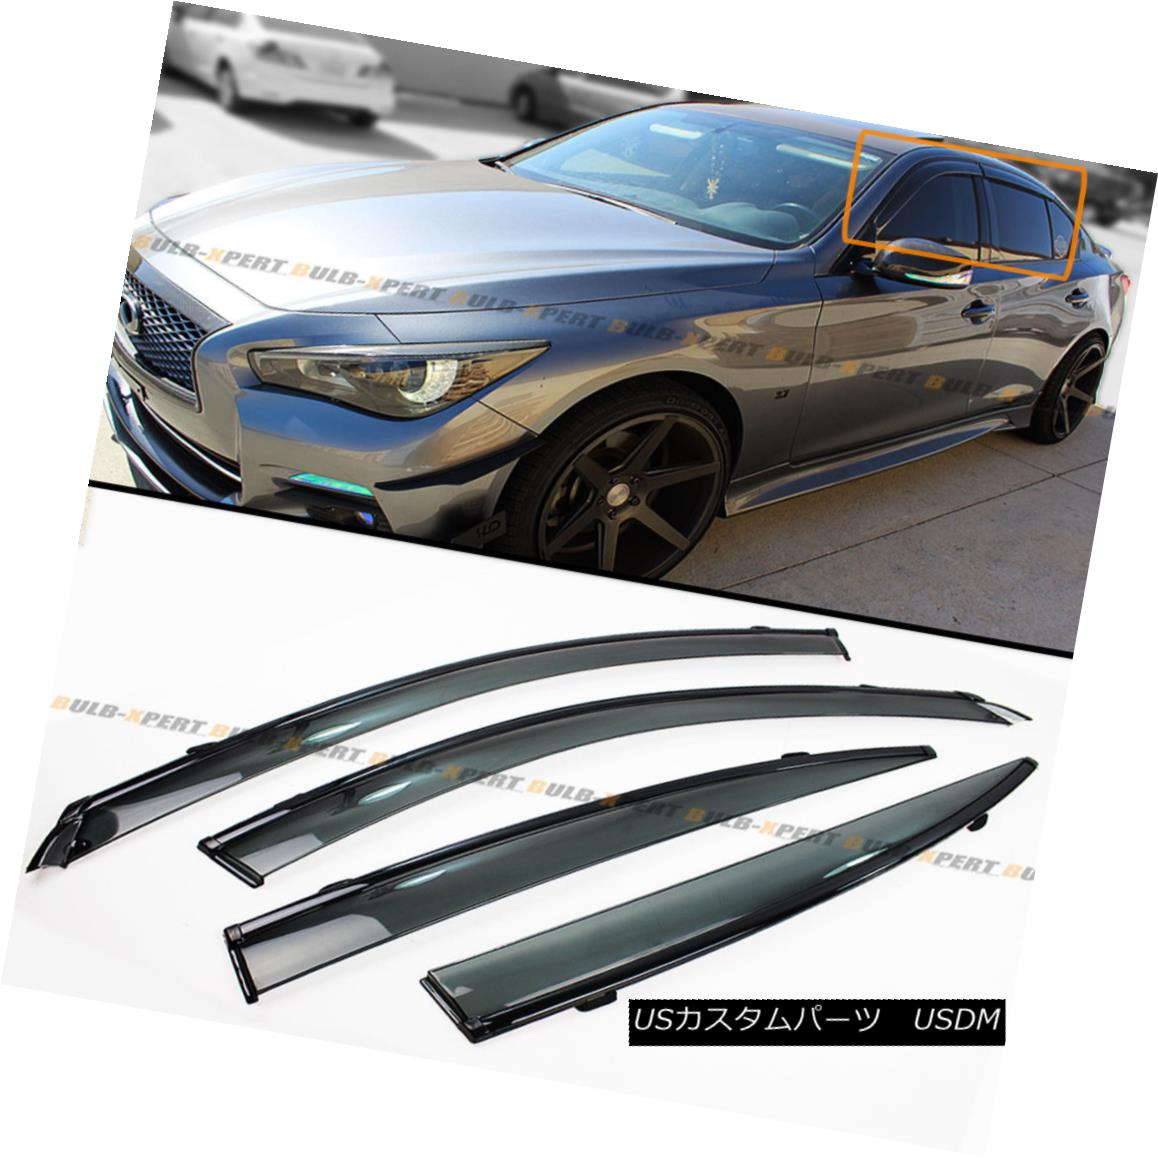 エアロパーツ FOR 2014-2018 INFINITI Q50 S VIP CLIP-ON SMOKE TINTED WINDOW VISOR W/ BLACK TRIM 2014年?2018年INFINITI Q50 S VIPクリップオンソーキーティント付きウィンドウビューアW / BLACK TRIM